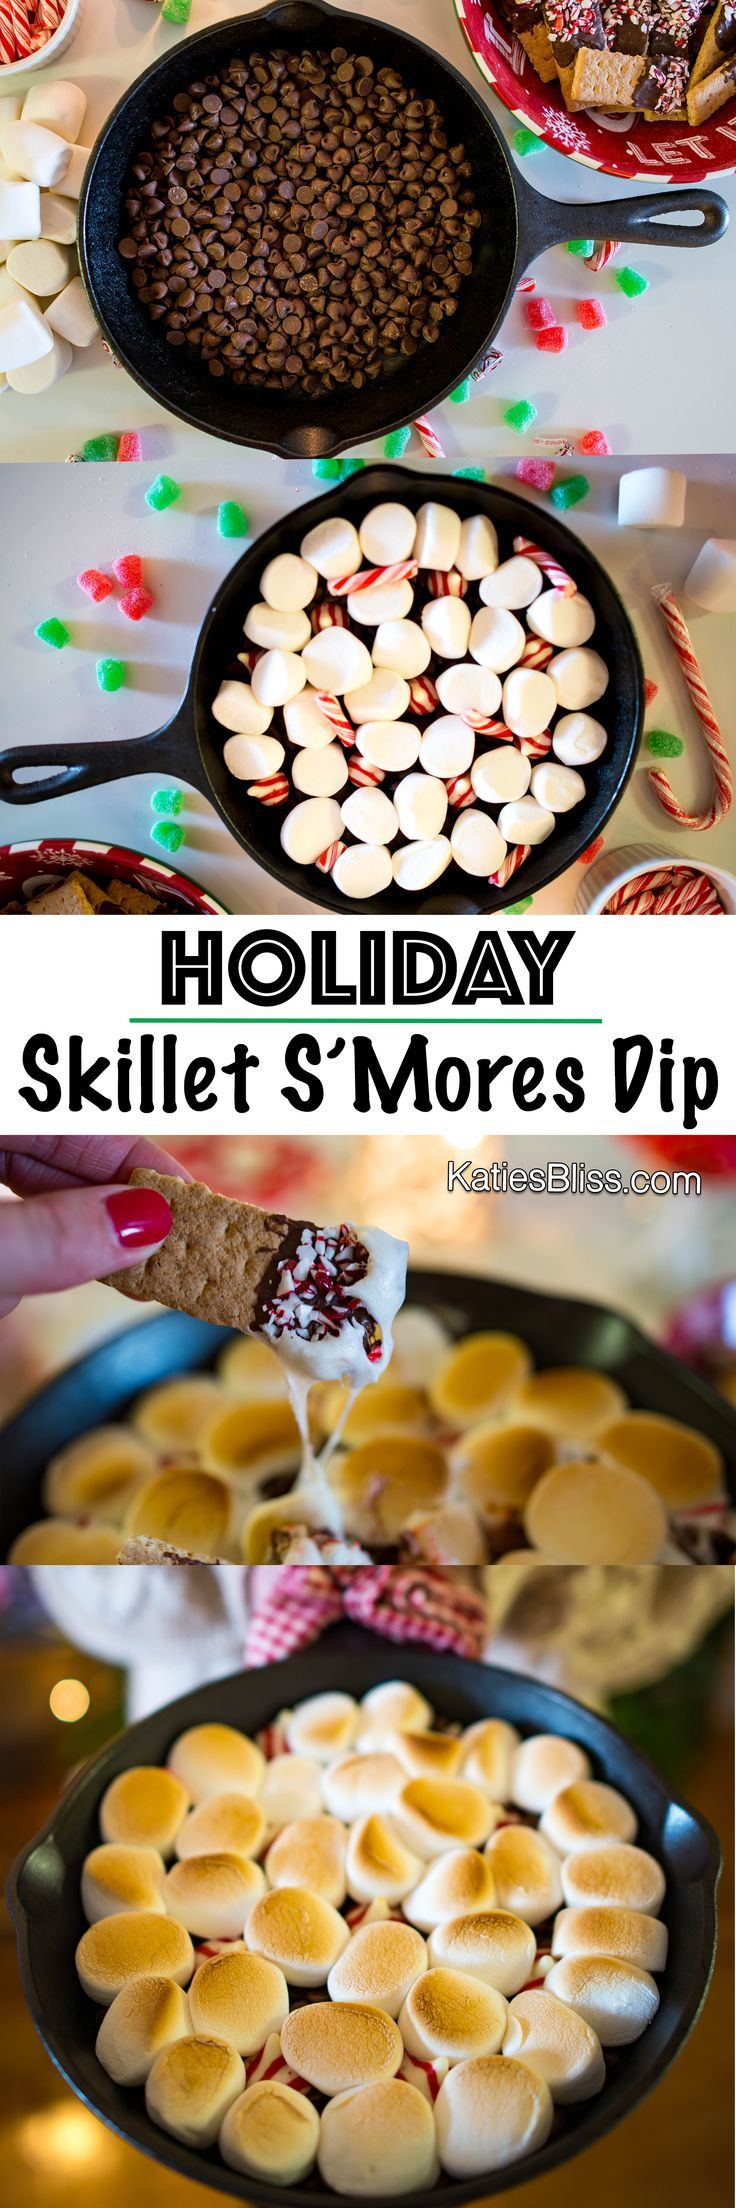 Holiday Skillet S'mores Dip Recipe via @katiesbliss  #desserts #holidayrecipes #baking #smores #skilletsmores #chocolate #delicious #foodie #nomnomnom